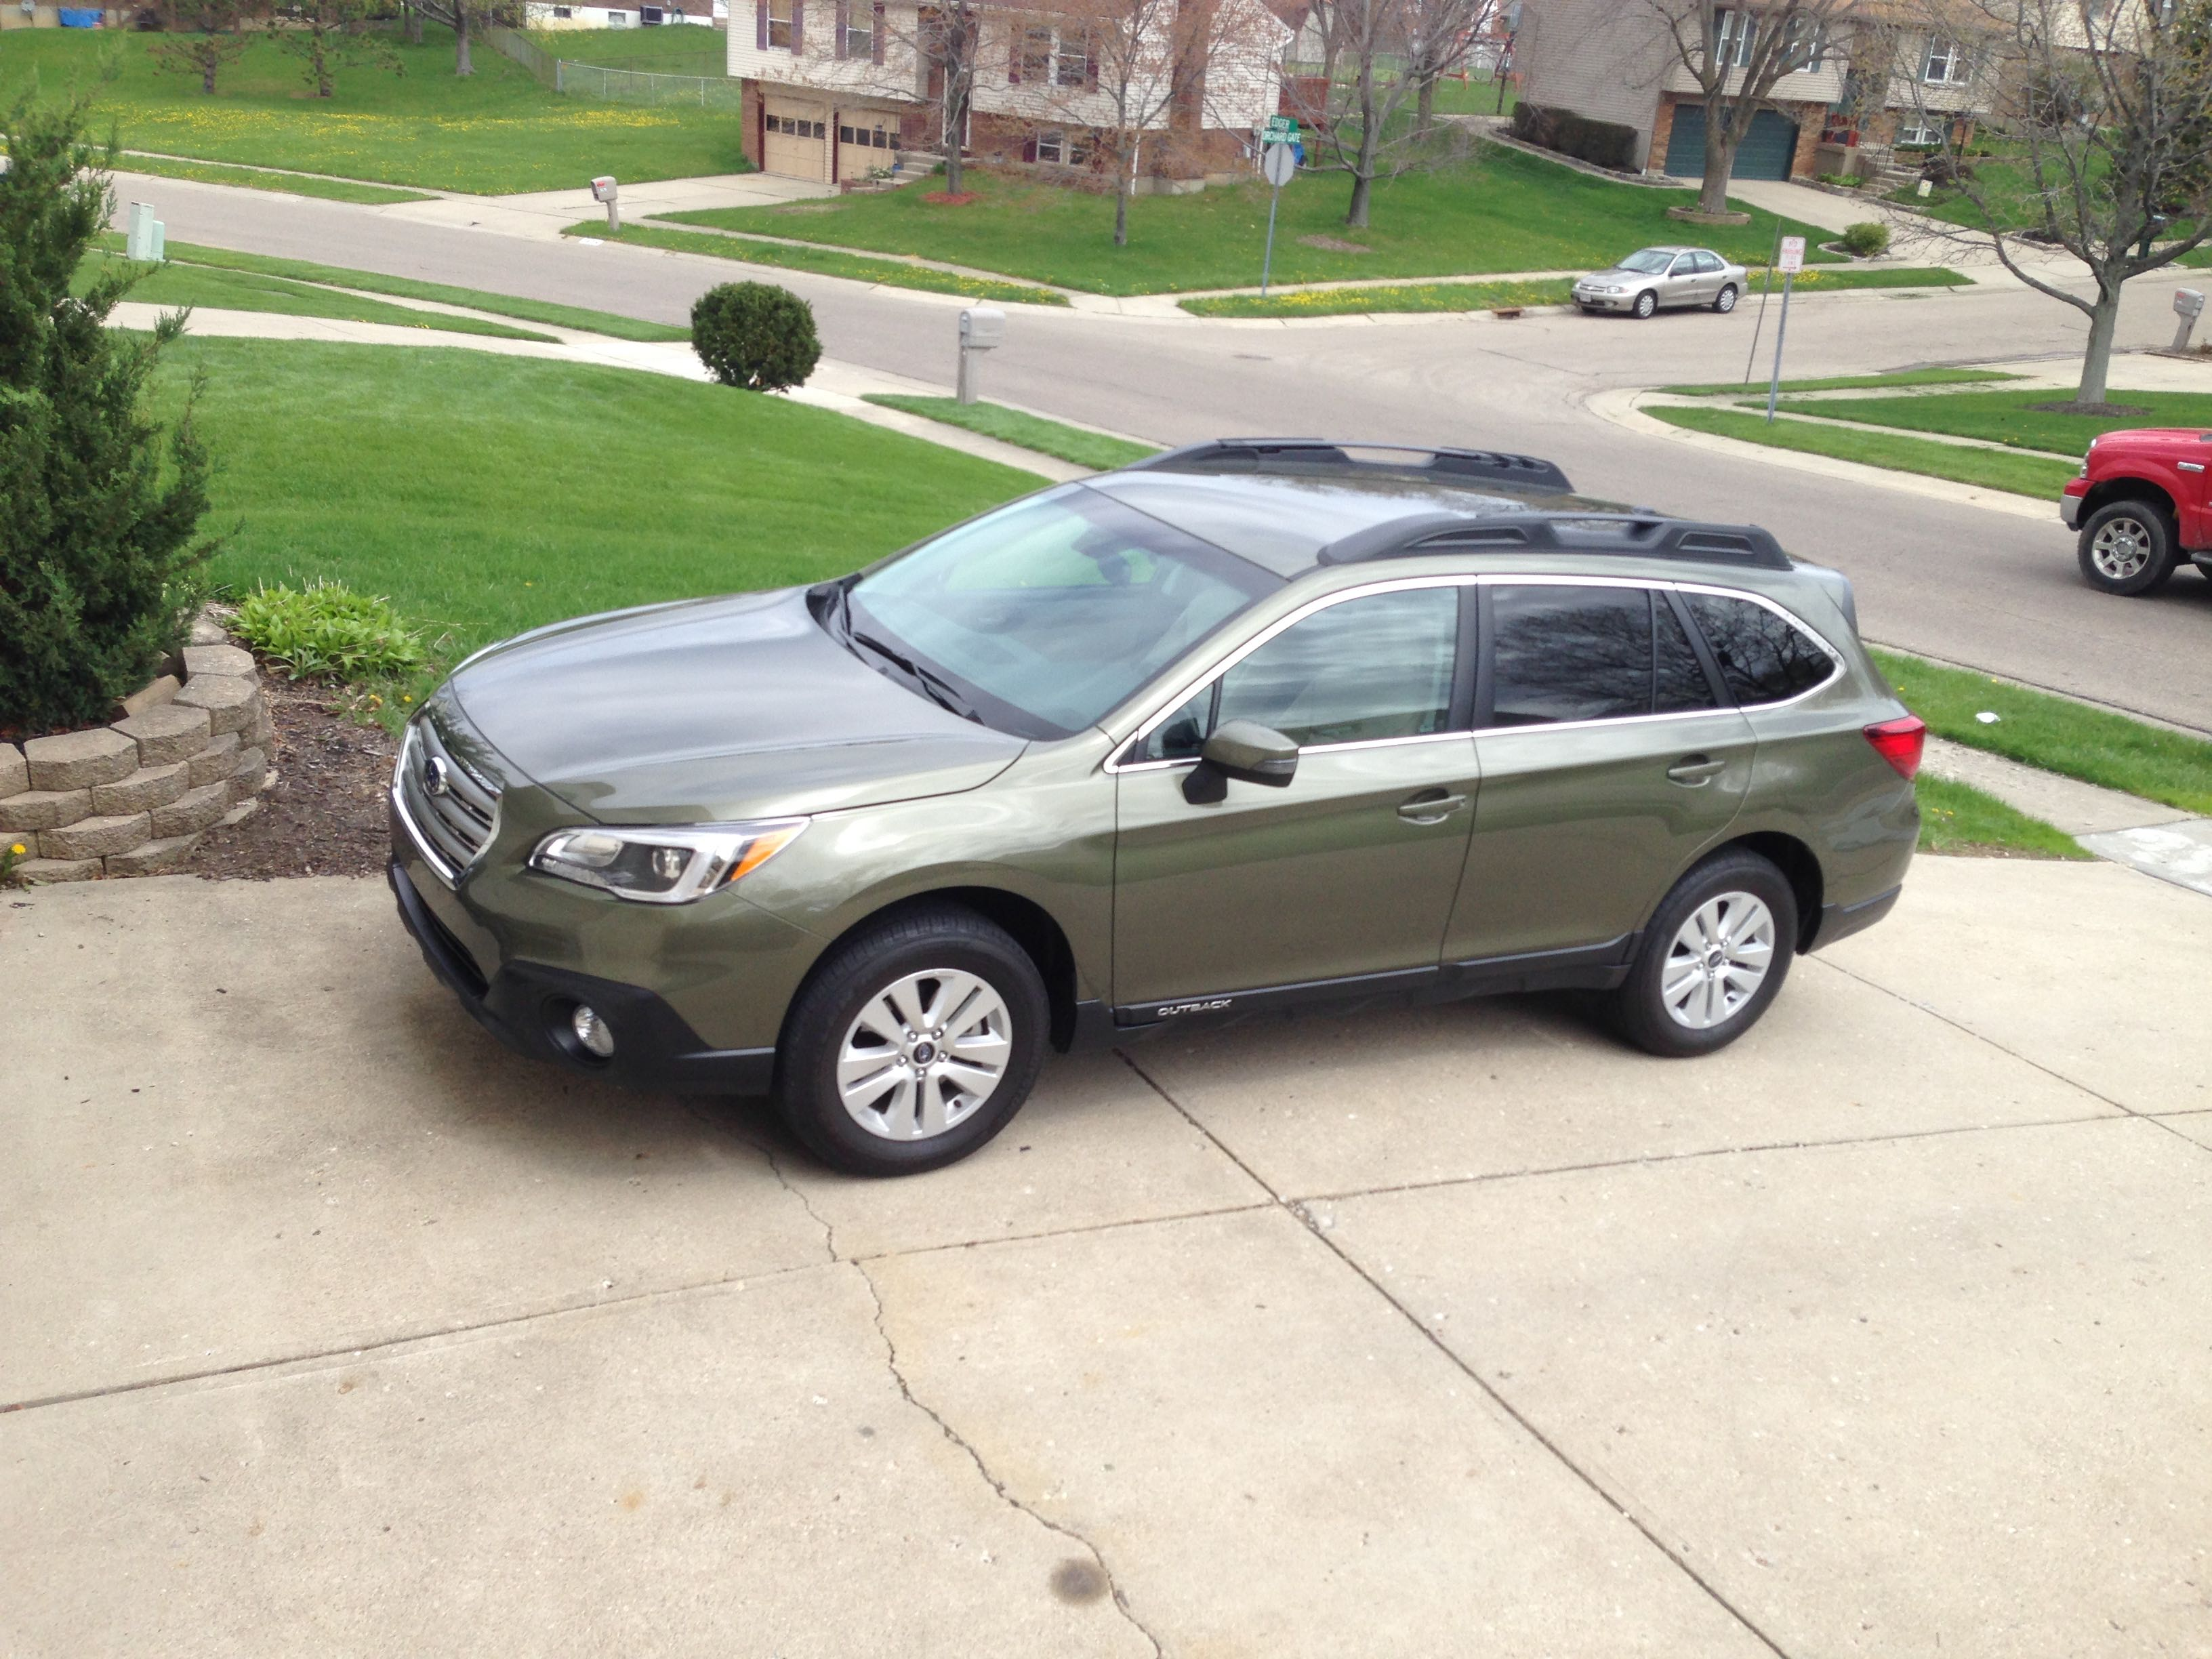 Used Subaru Outback for Sale: 10,799 Cars from $999 - iSeeCars.com